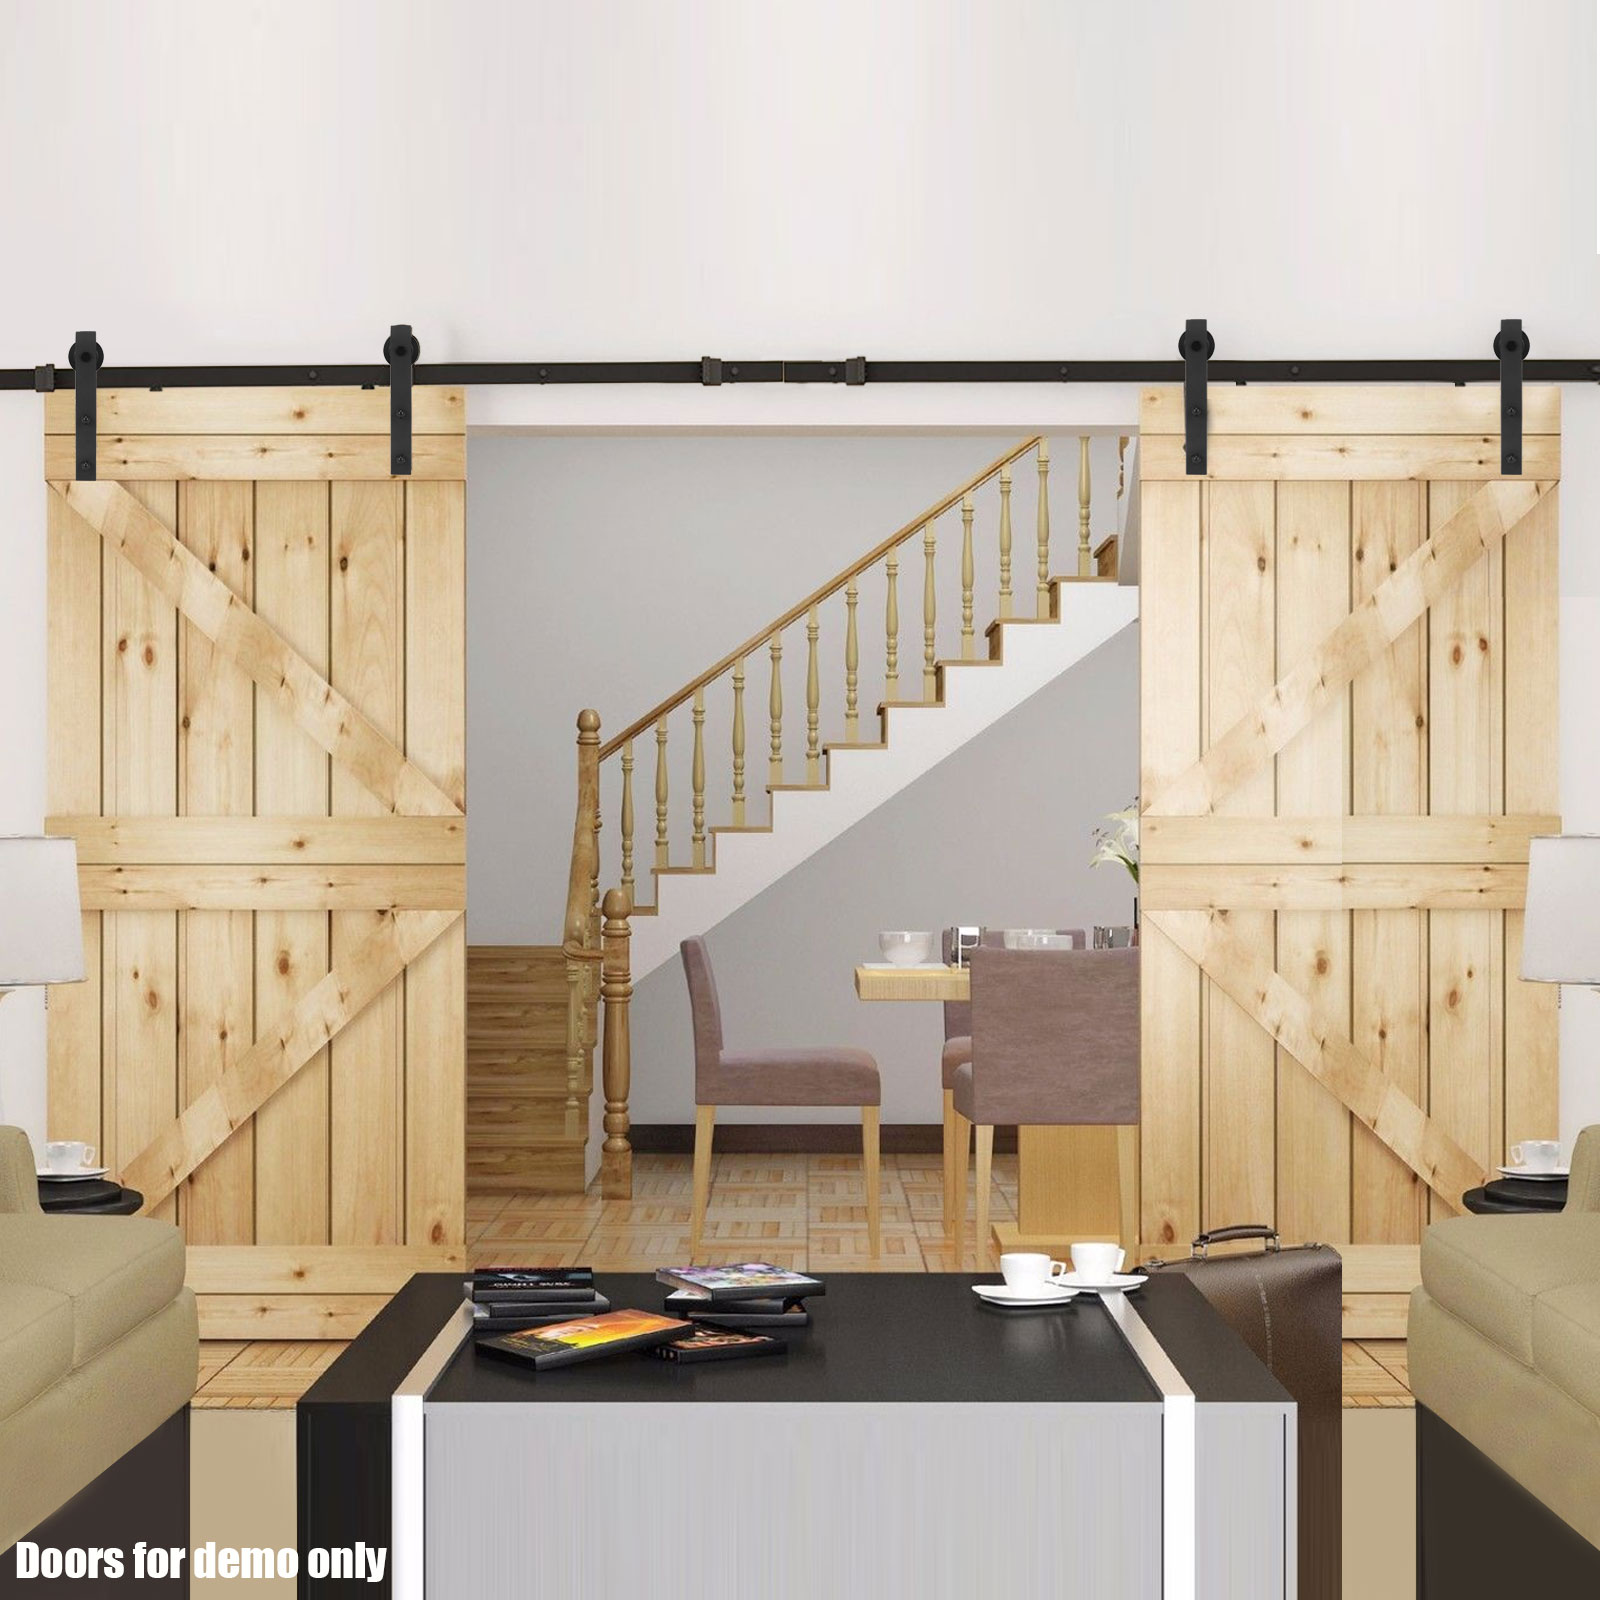 20 Home Offices With Sliding Barn Doors: 4M Sliding Barn Door Hardware Track Set Home Office